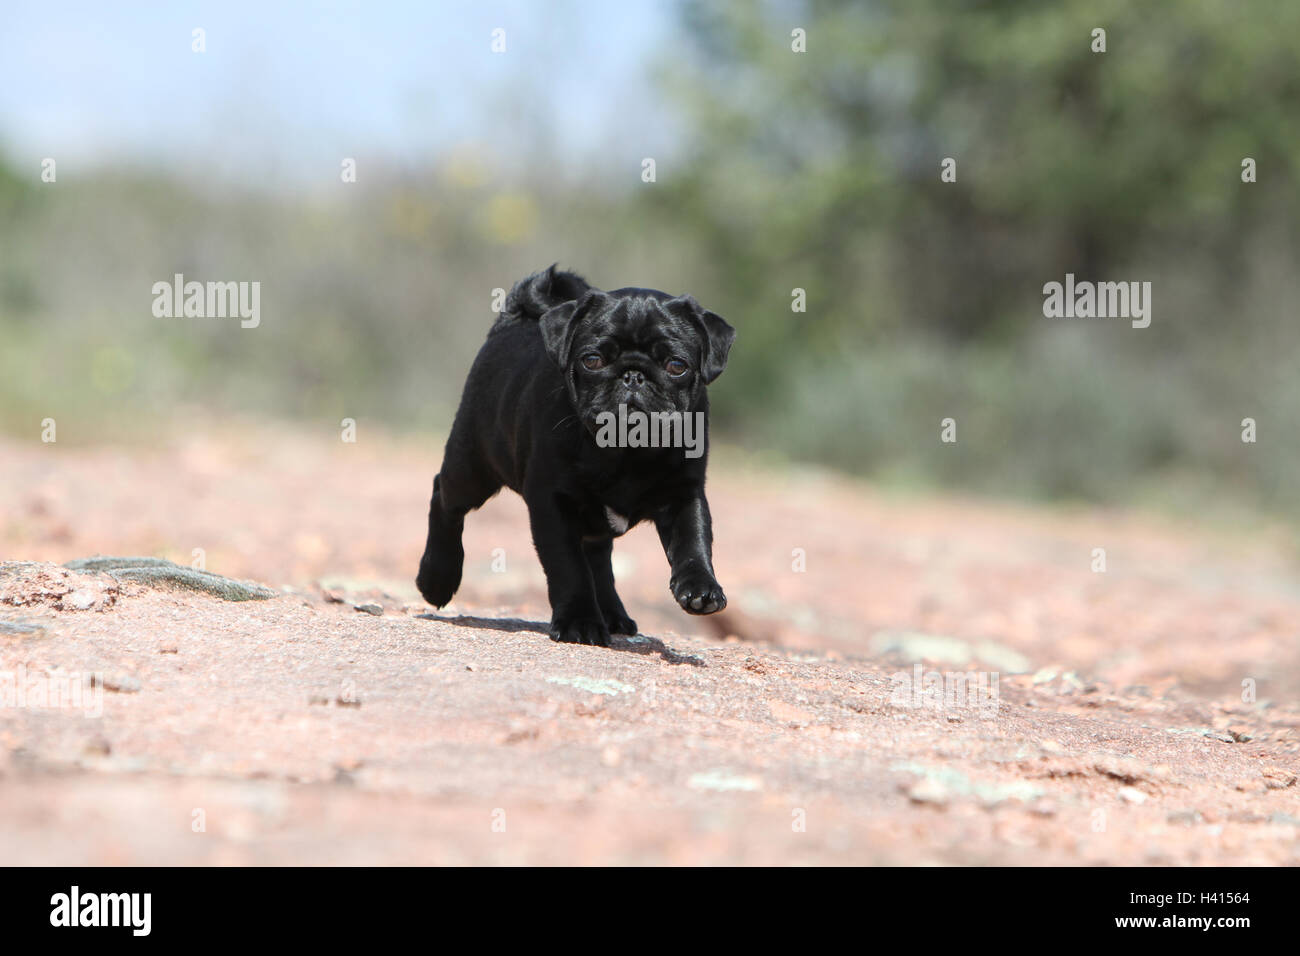 Dog Pug / Carlin / Mops puppy black standing rock in the wild - Stock Image